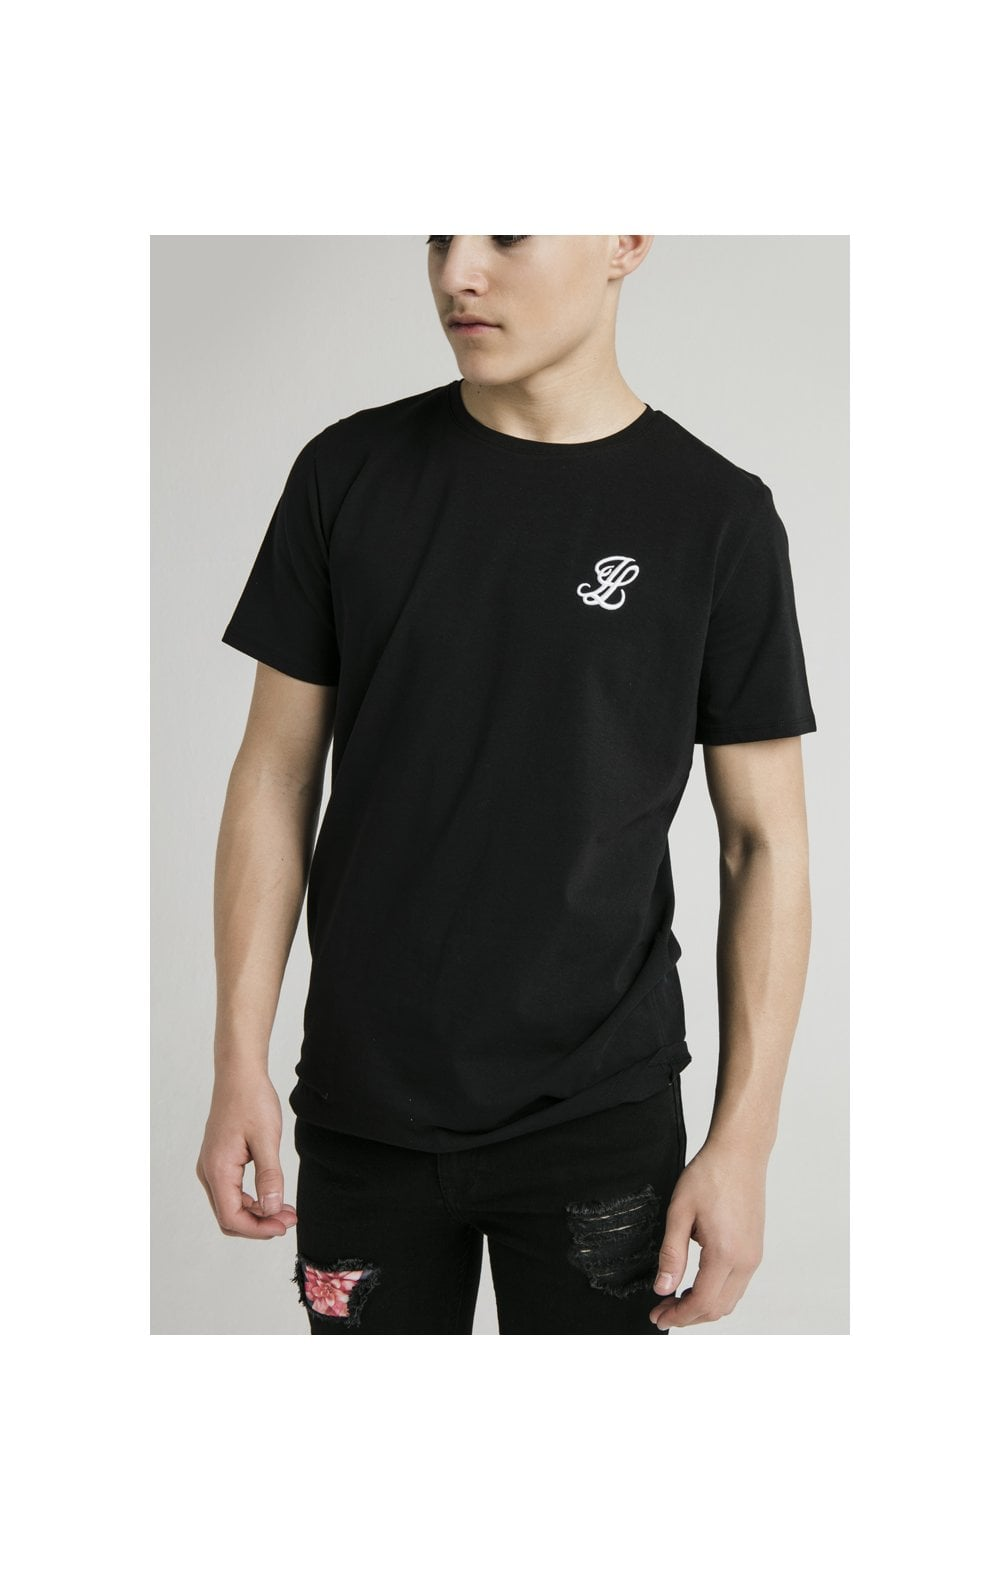 Illusive London S/S Core Tee - Black (1)